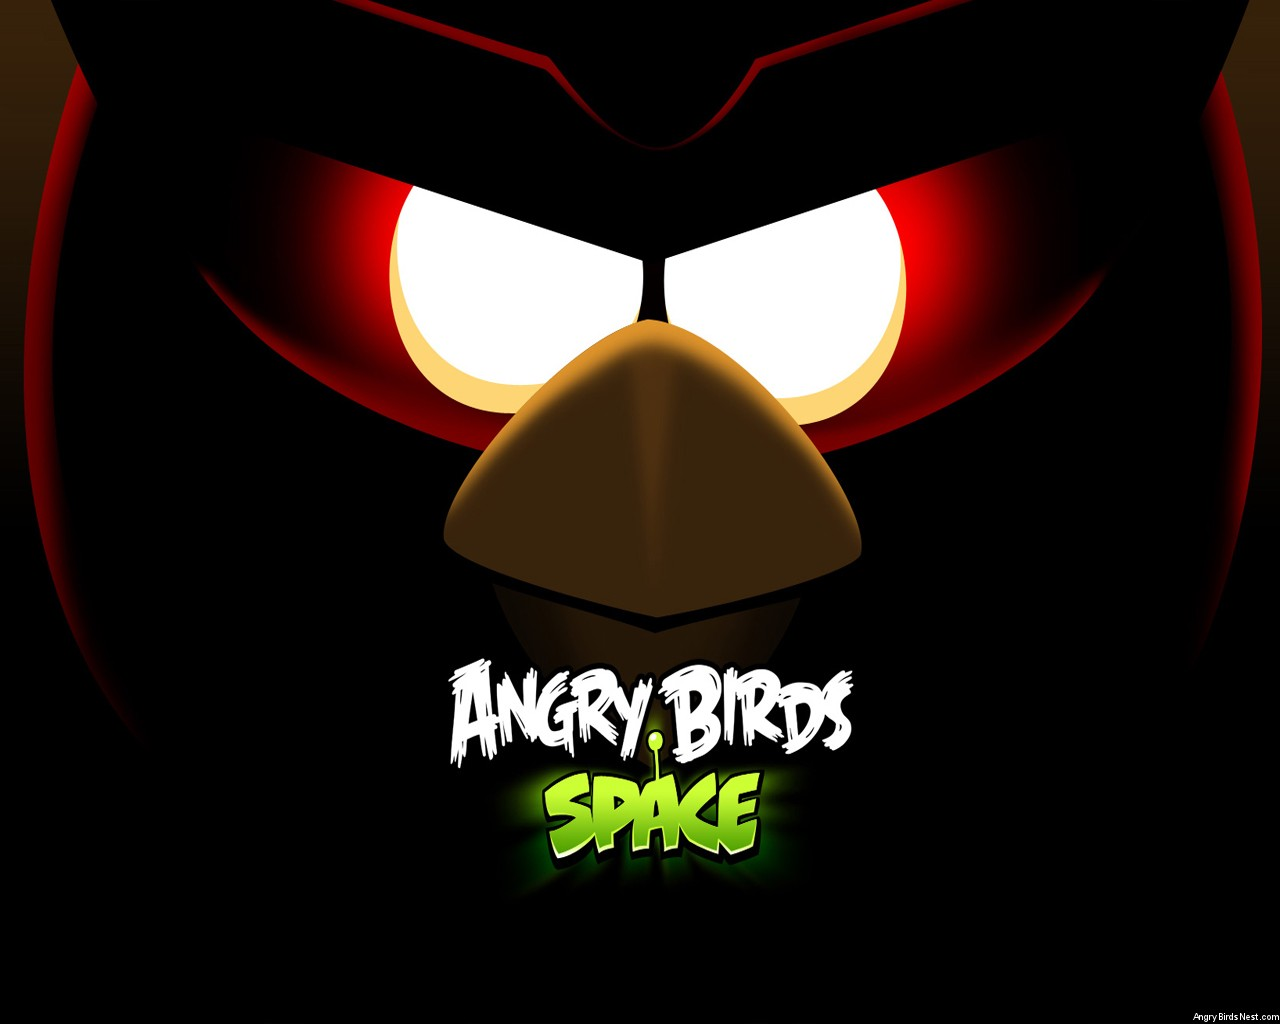 Angry Birds Space Red Bird Eyes Laptop Wallpaper 1280x1024